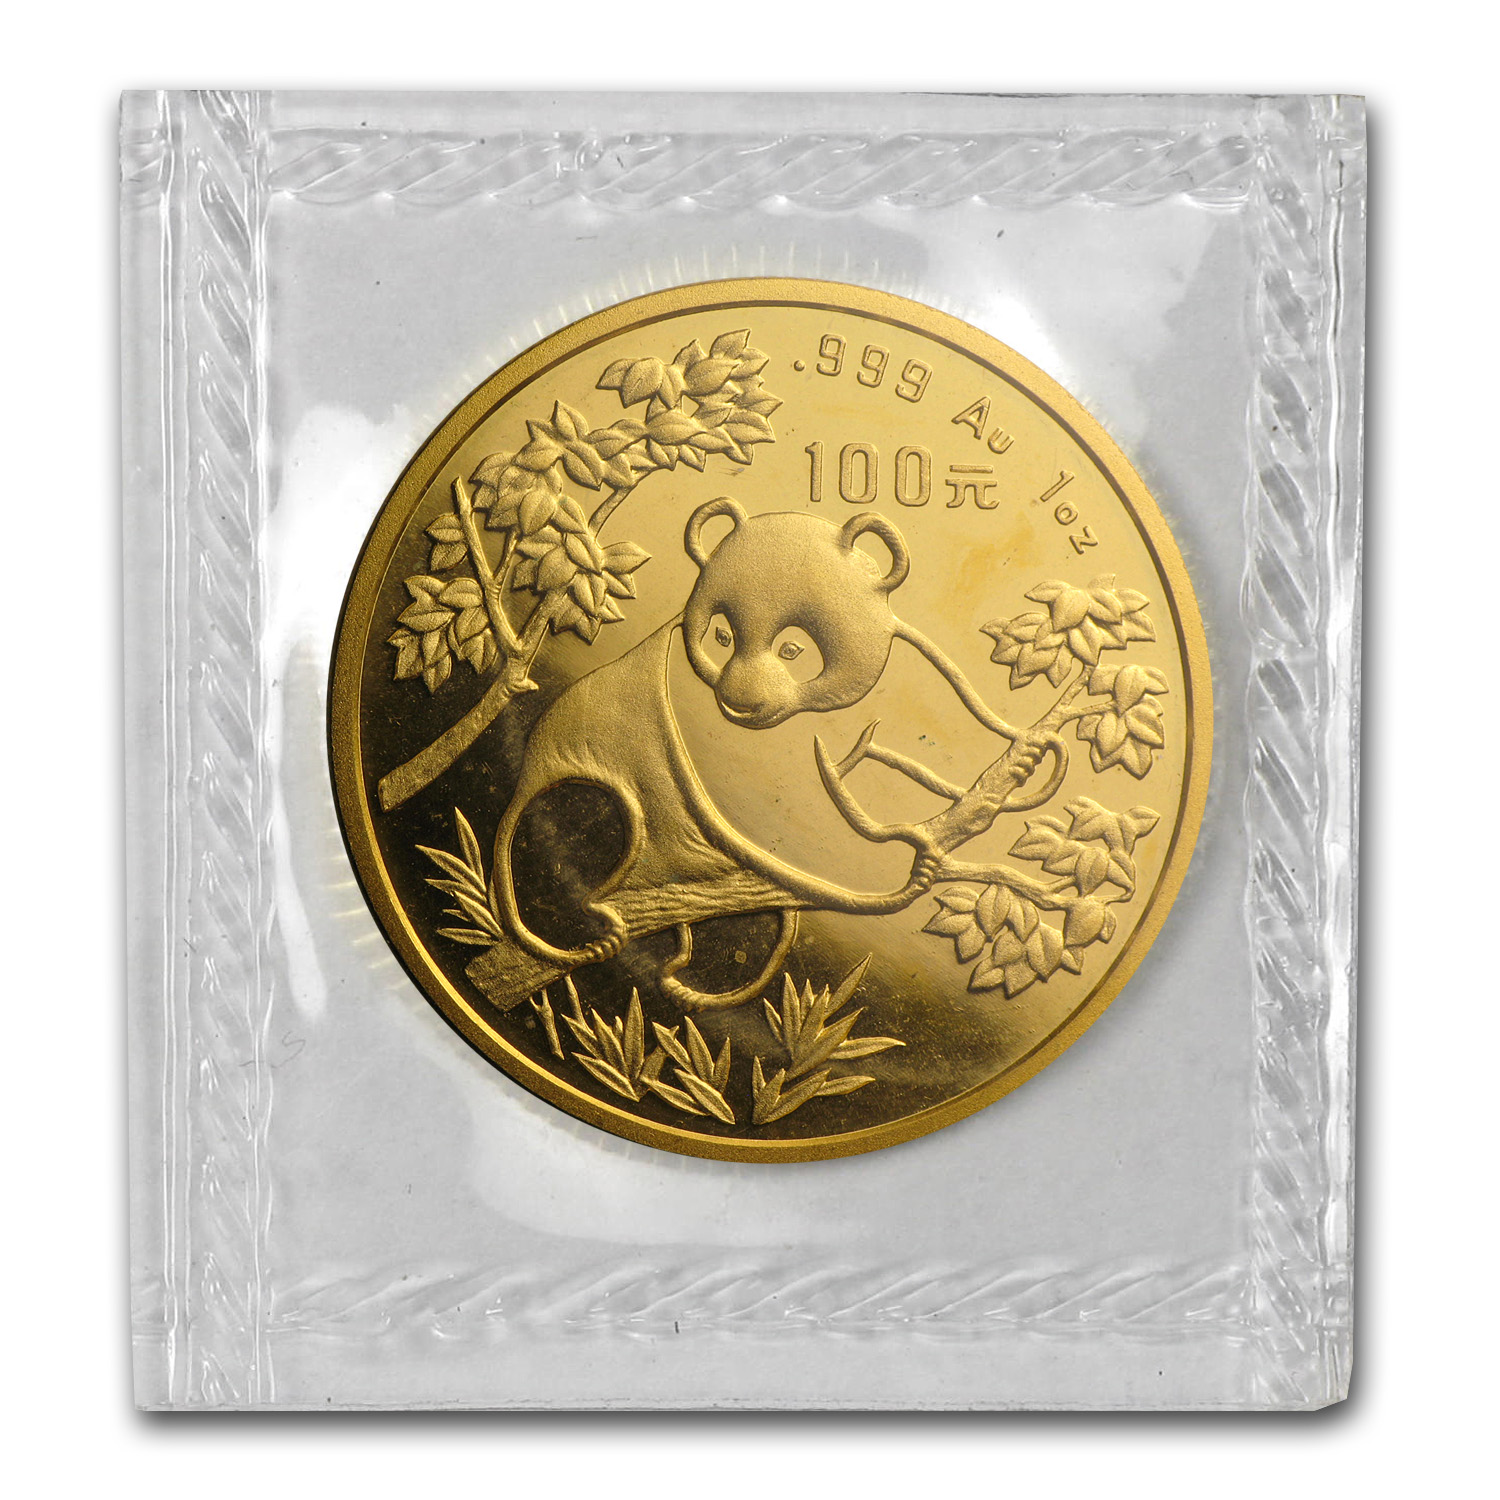 1992 1 oz Gold Chinese Panda - Small Date (Sealed)